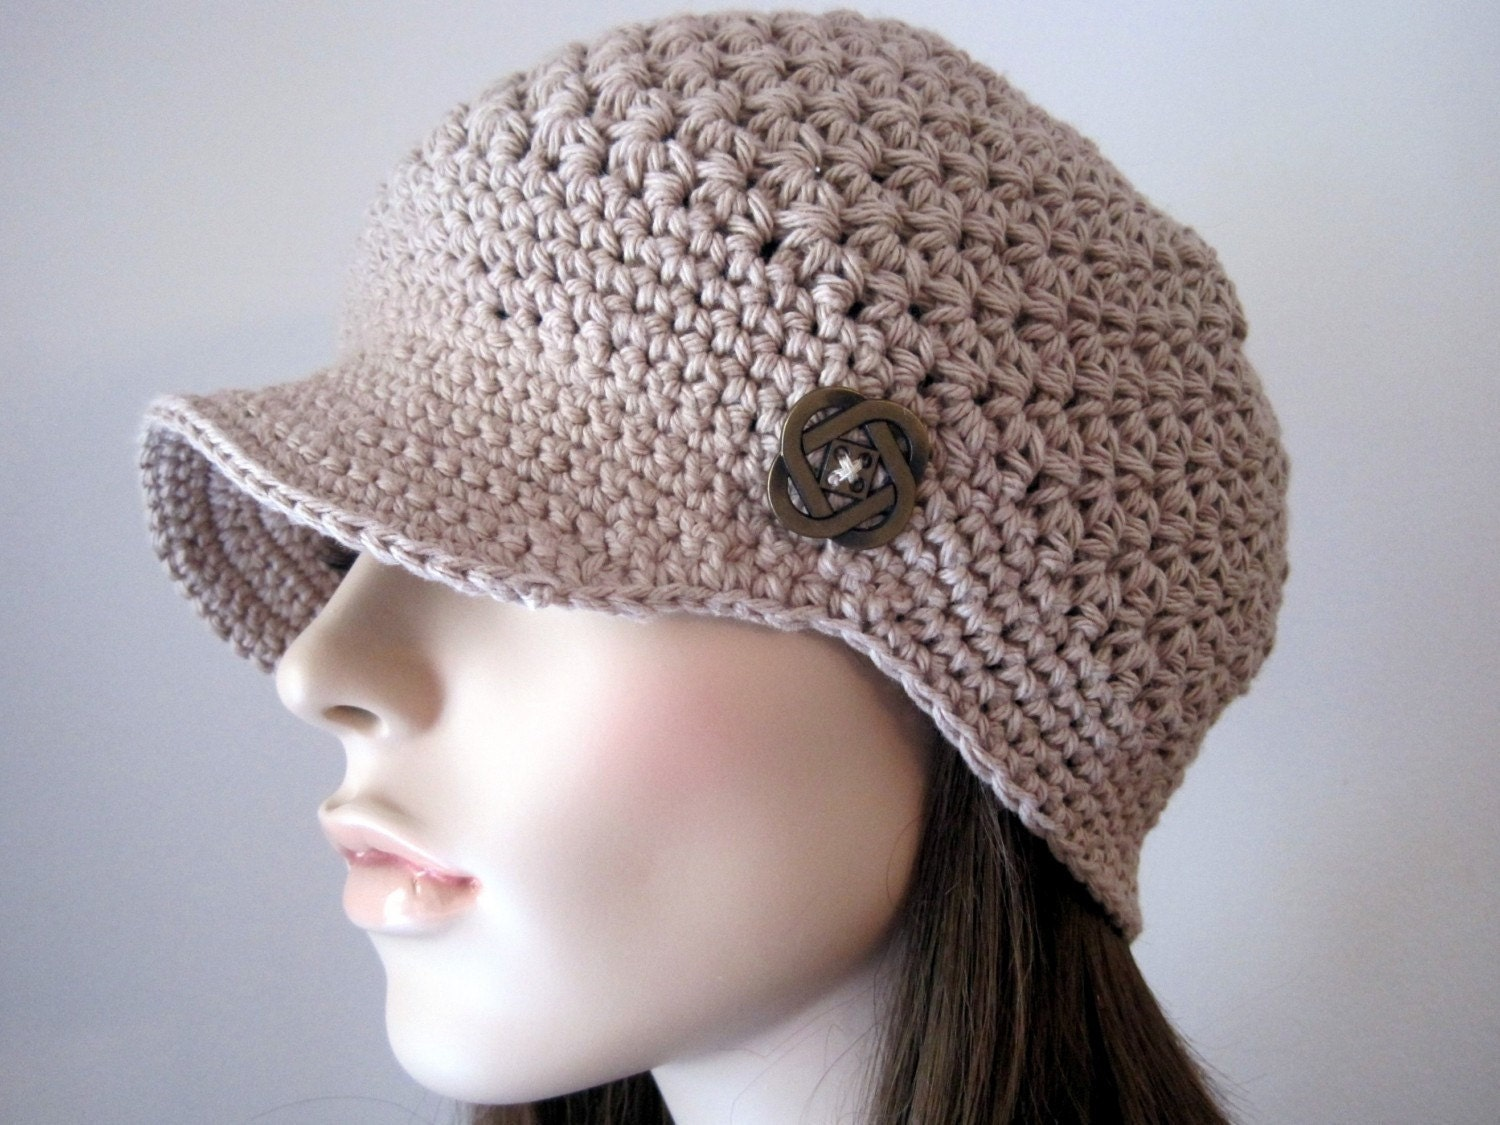 Crocheting A Hat : Womens Accesories Crochet Hat Womens Newsboy Hat by Monarchdancer